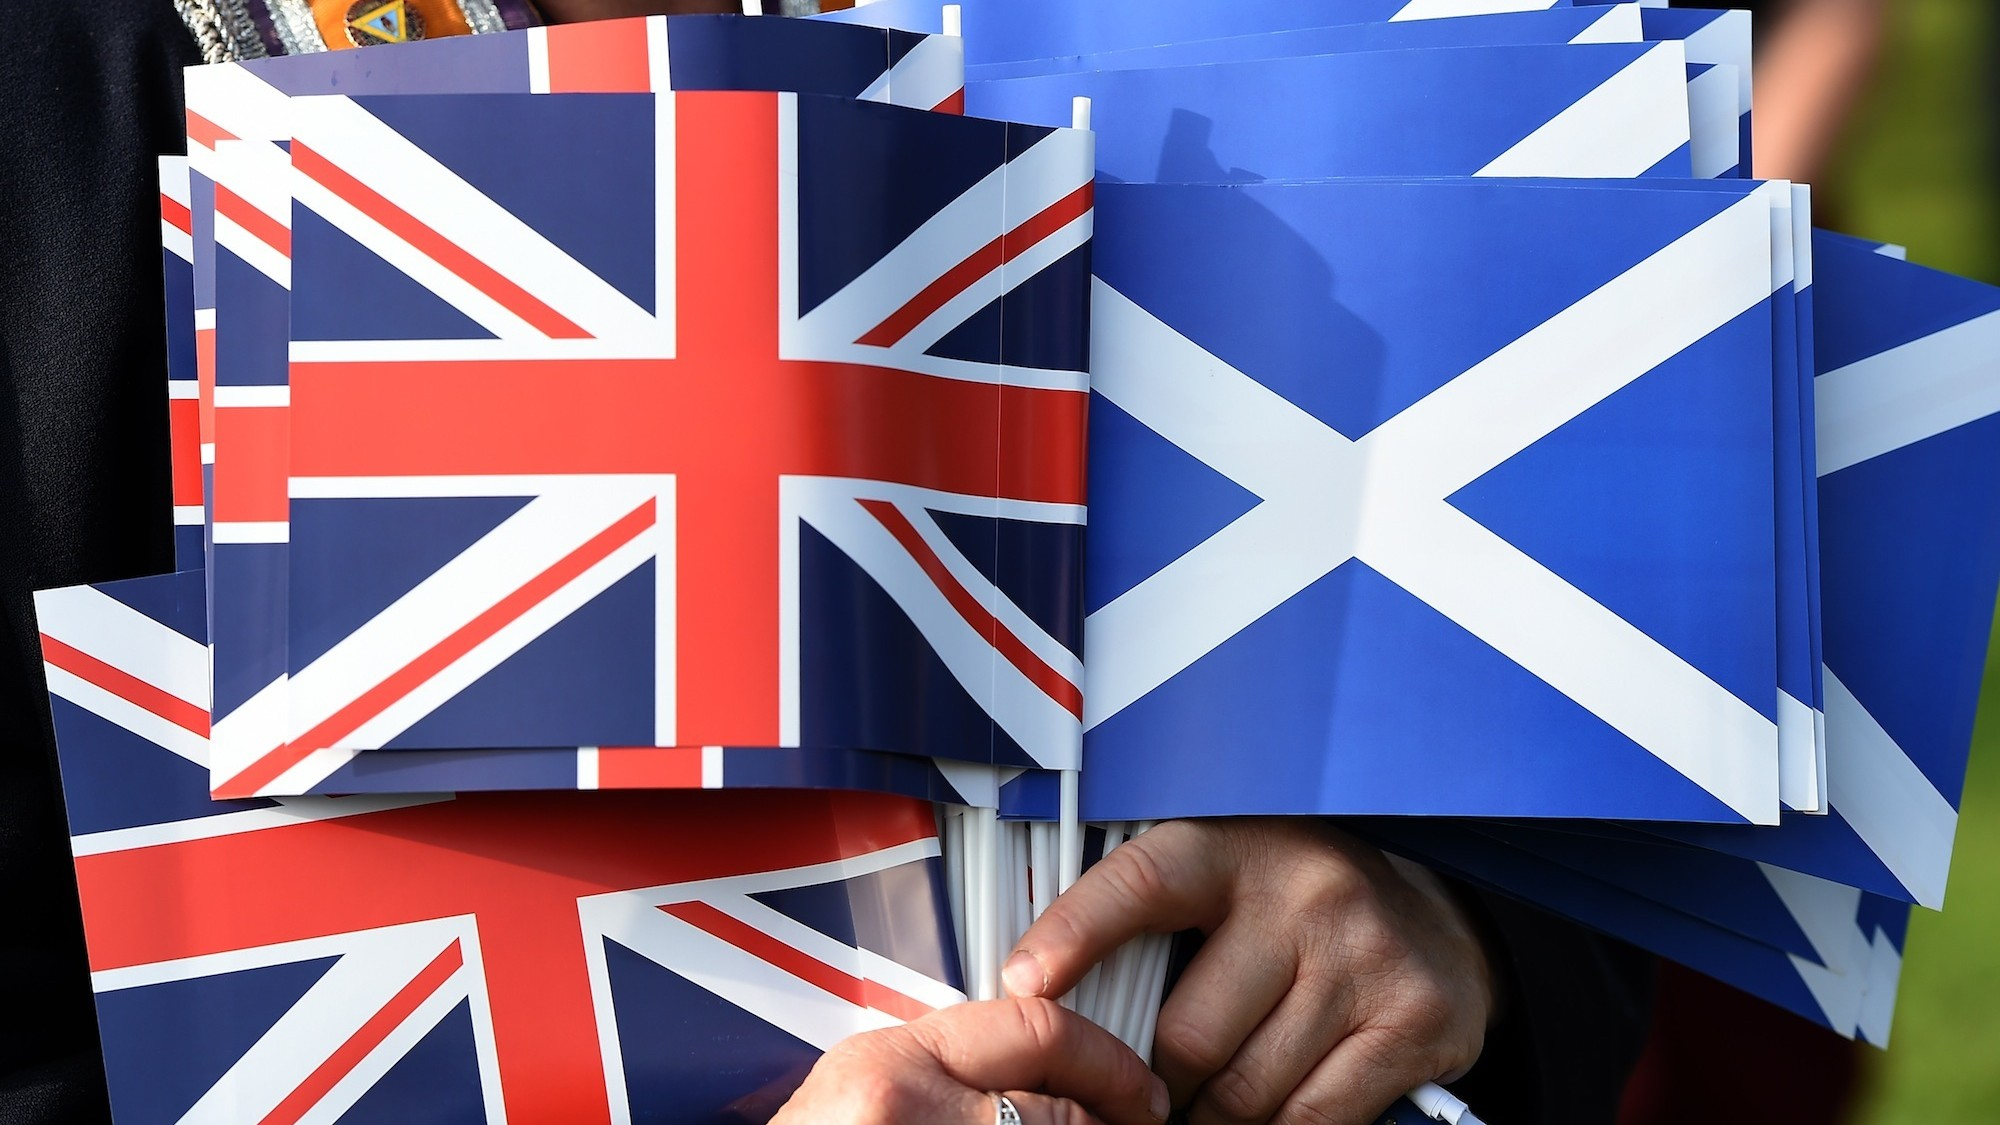 Scotland is so pissed about the Brexit it might break up with the UK